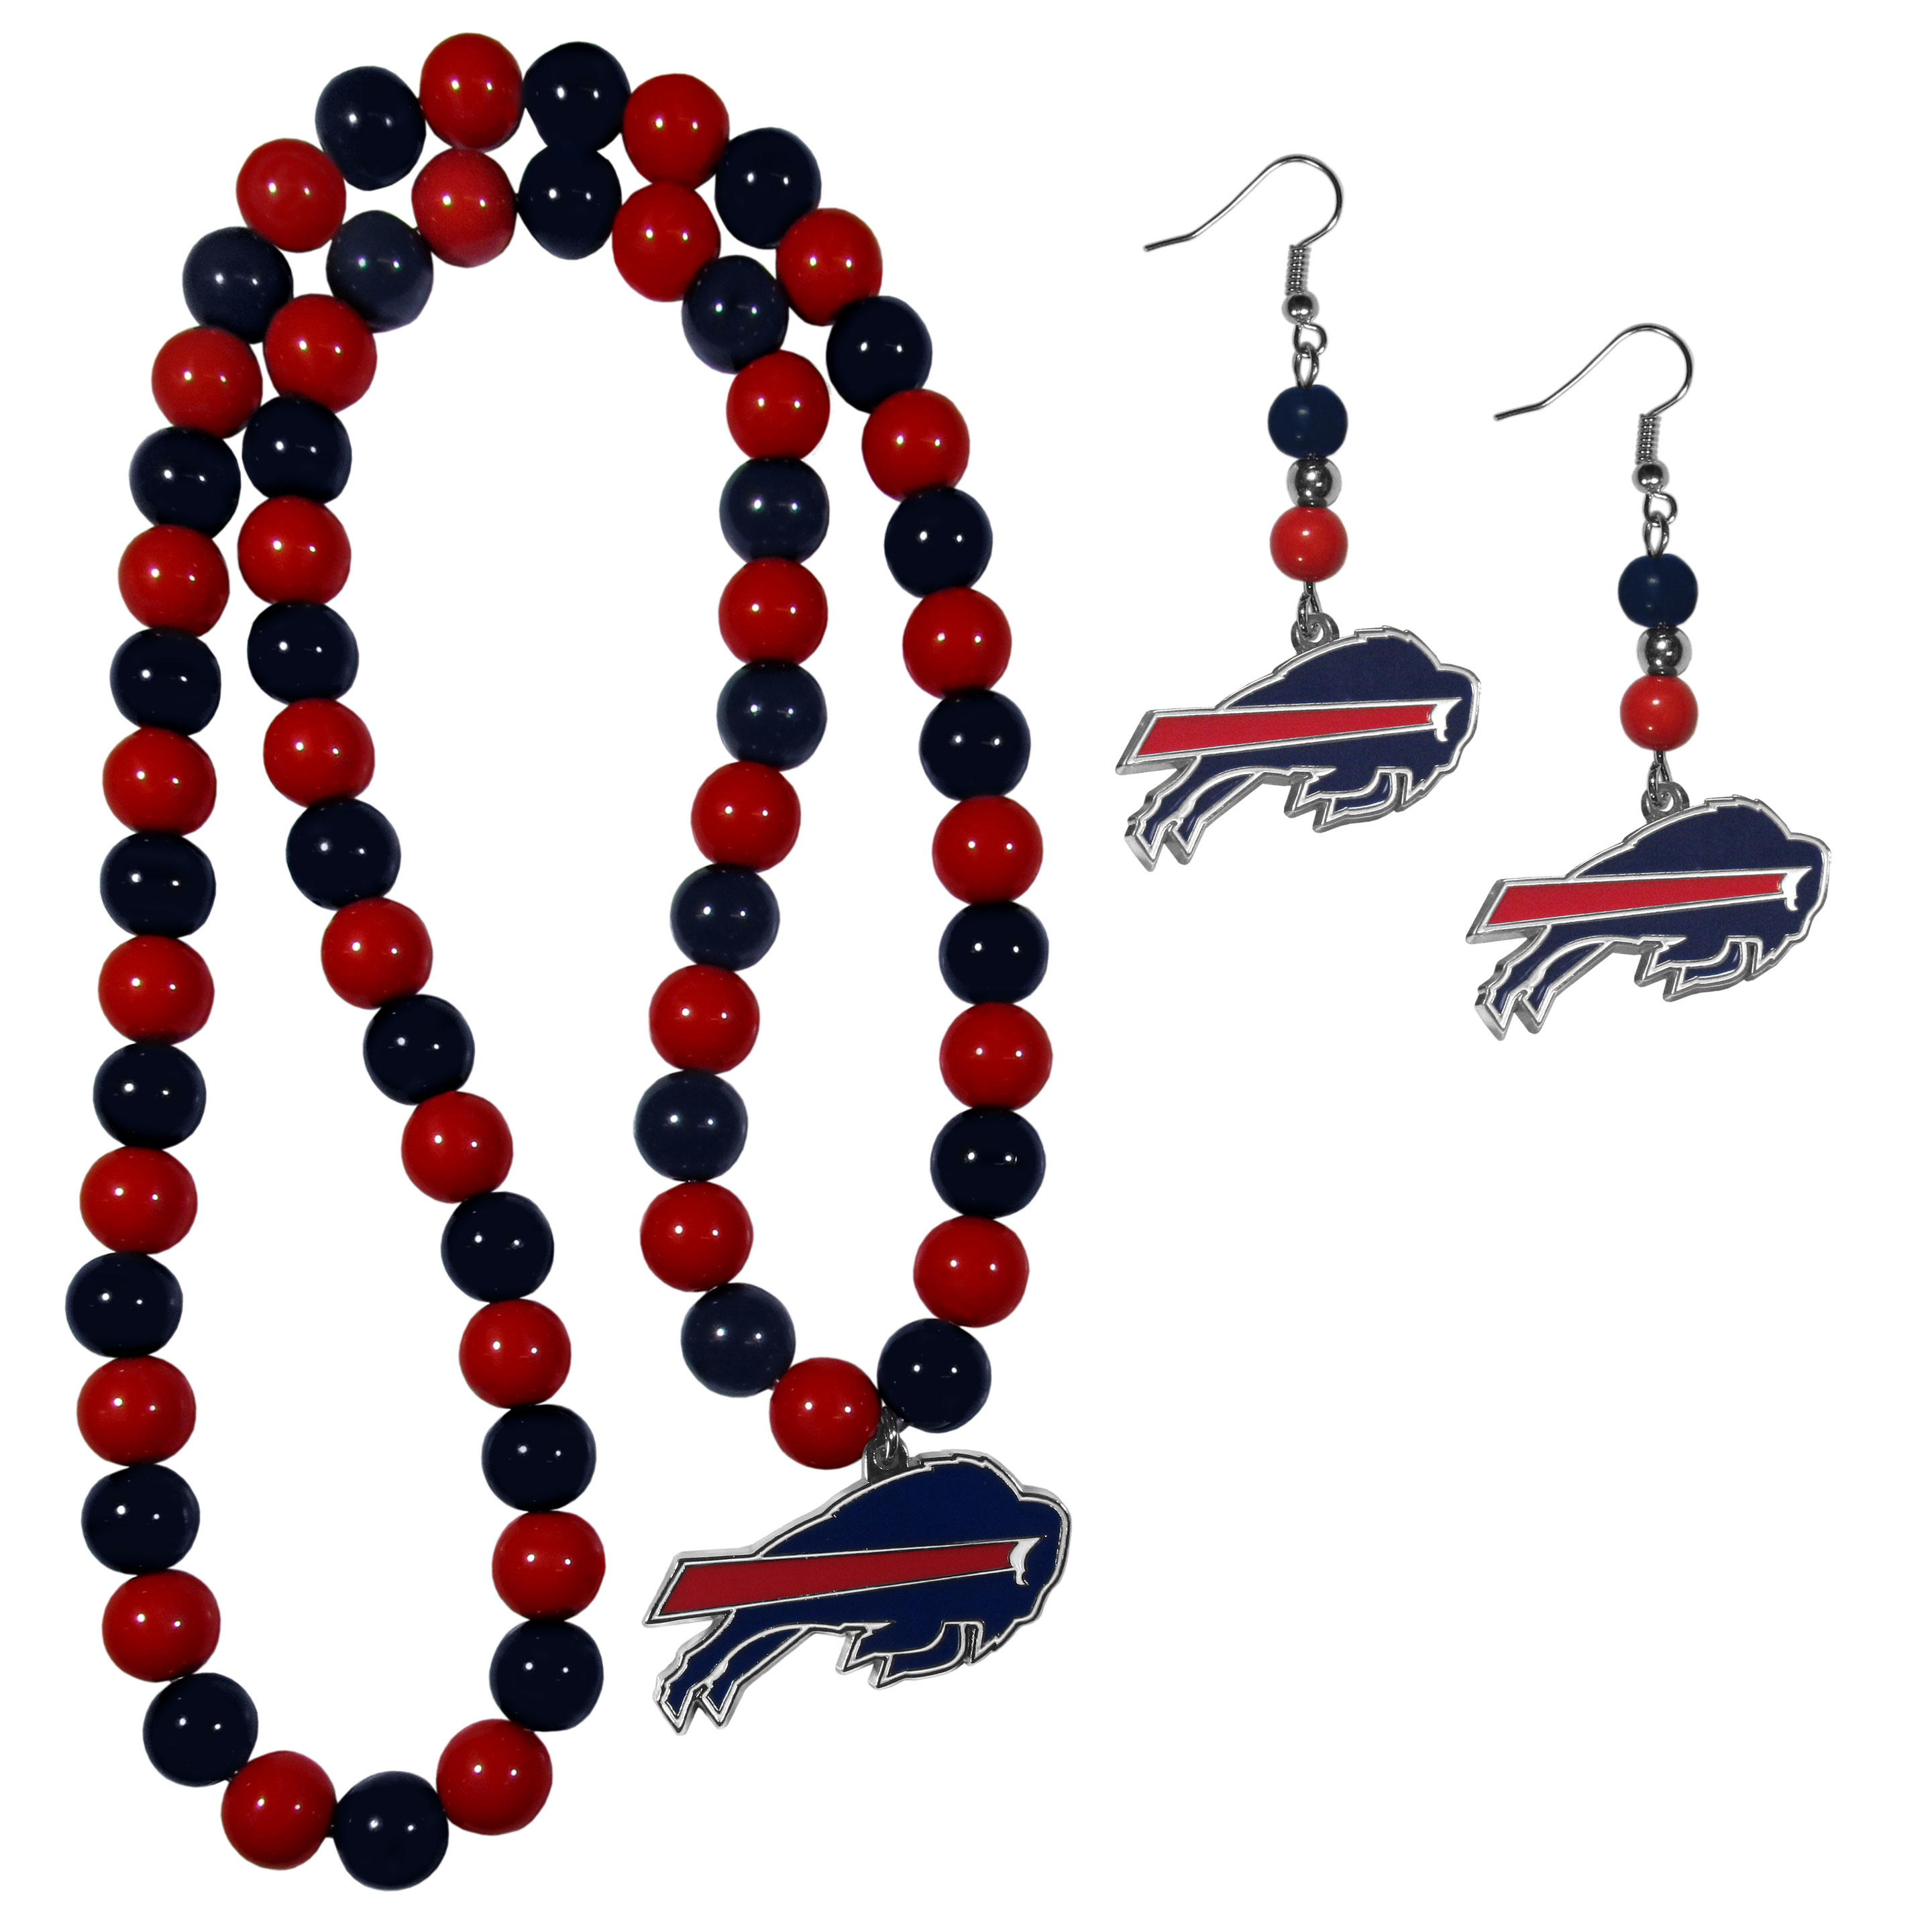 Buffalo Bills Fan Bead Earrings and Necklace Set - These fun and colorful Buffalo Bills fan bead jewelry pieces are an eyecatching way to show off your team spirit. The earrings feature hypoallergenic, nickel free fishhook post and 2 team colored beads with a beautifully carved team charm to finish this attractive dangle look. The mathcing bracelet has alternating team colored beads on a stretch cord and features a matching team charm.